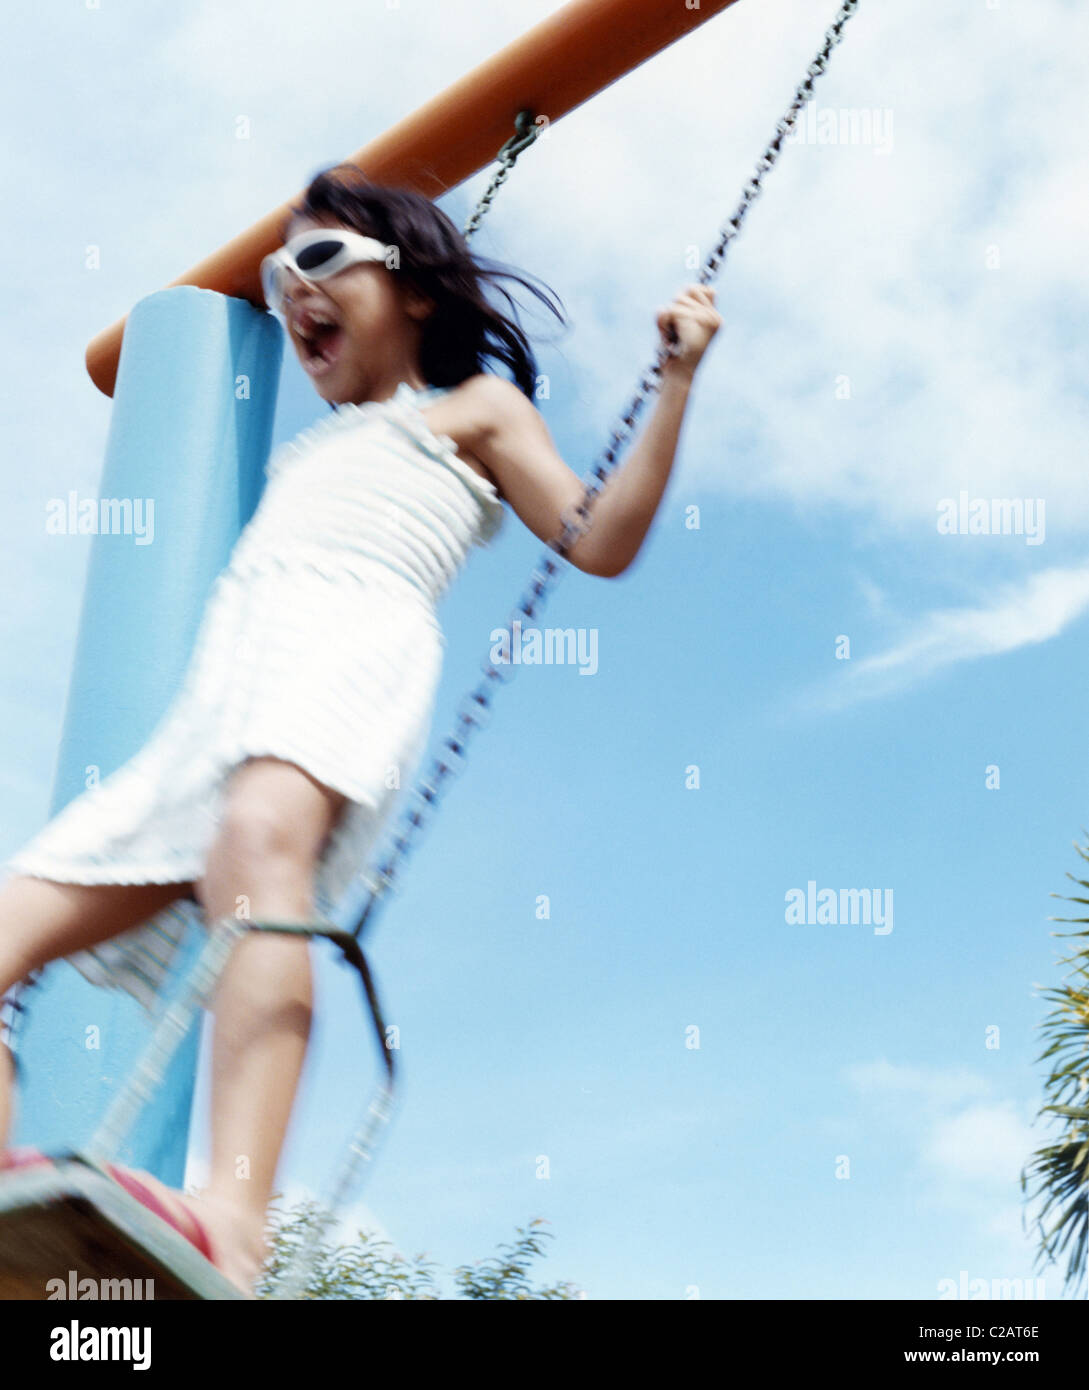 Girl playing on swing, low angle view Stock Photo